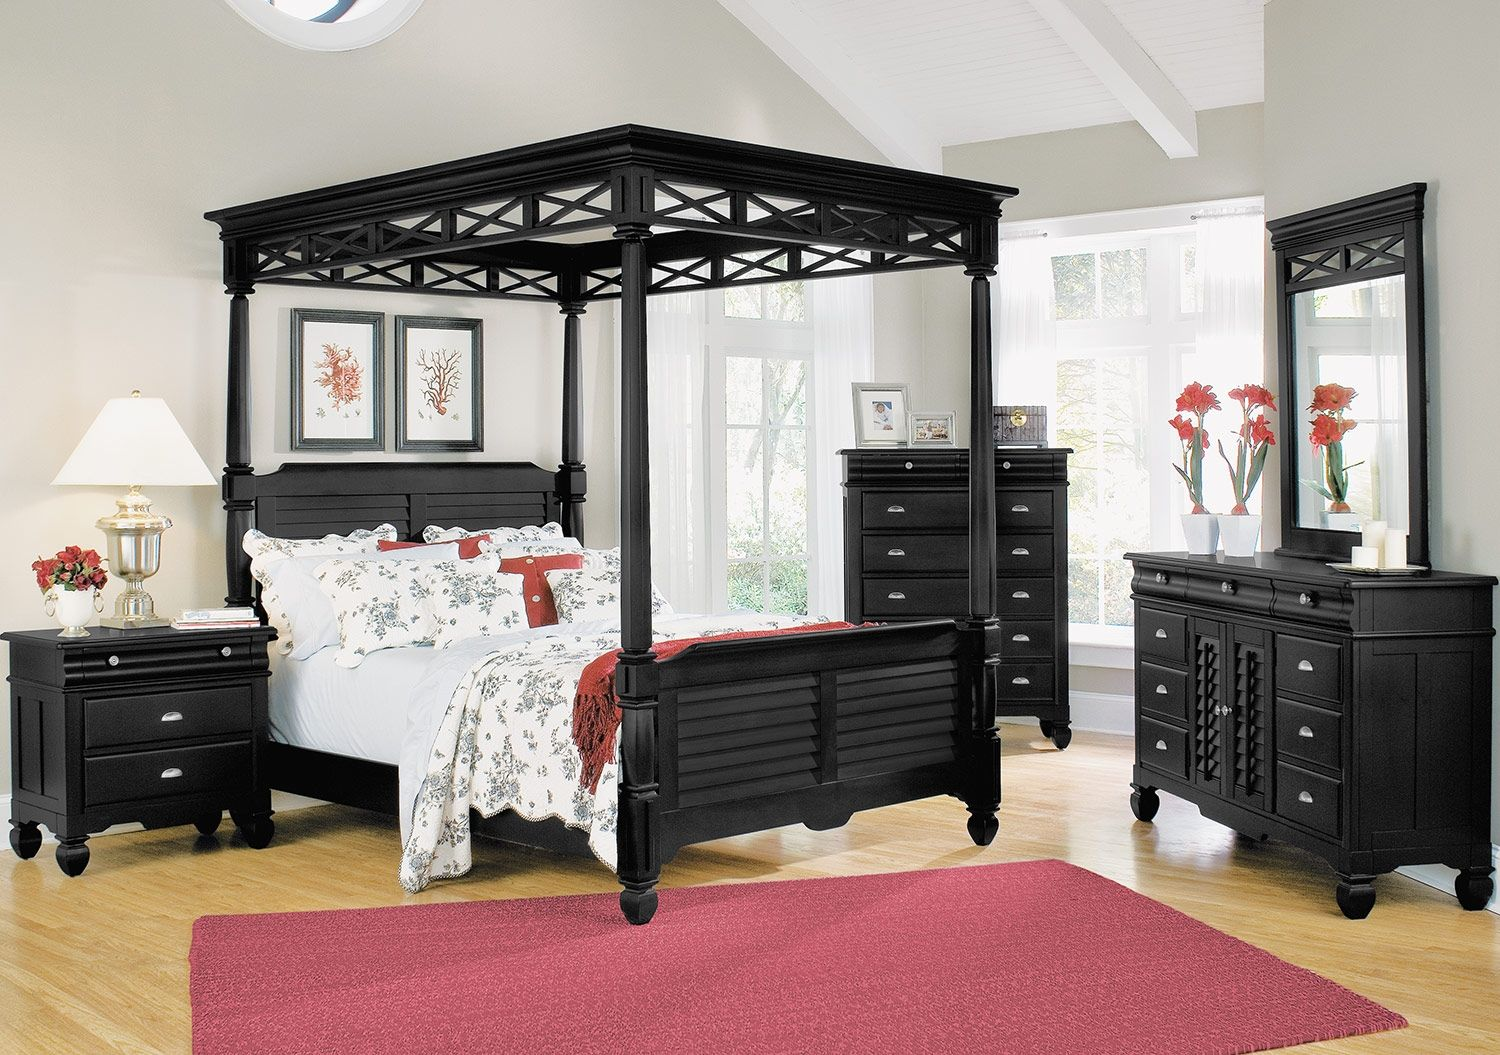 Bedroom Furniture Plantation Cove Black Canopy Queen Bed